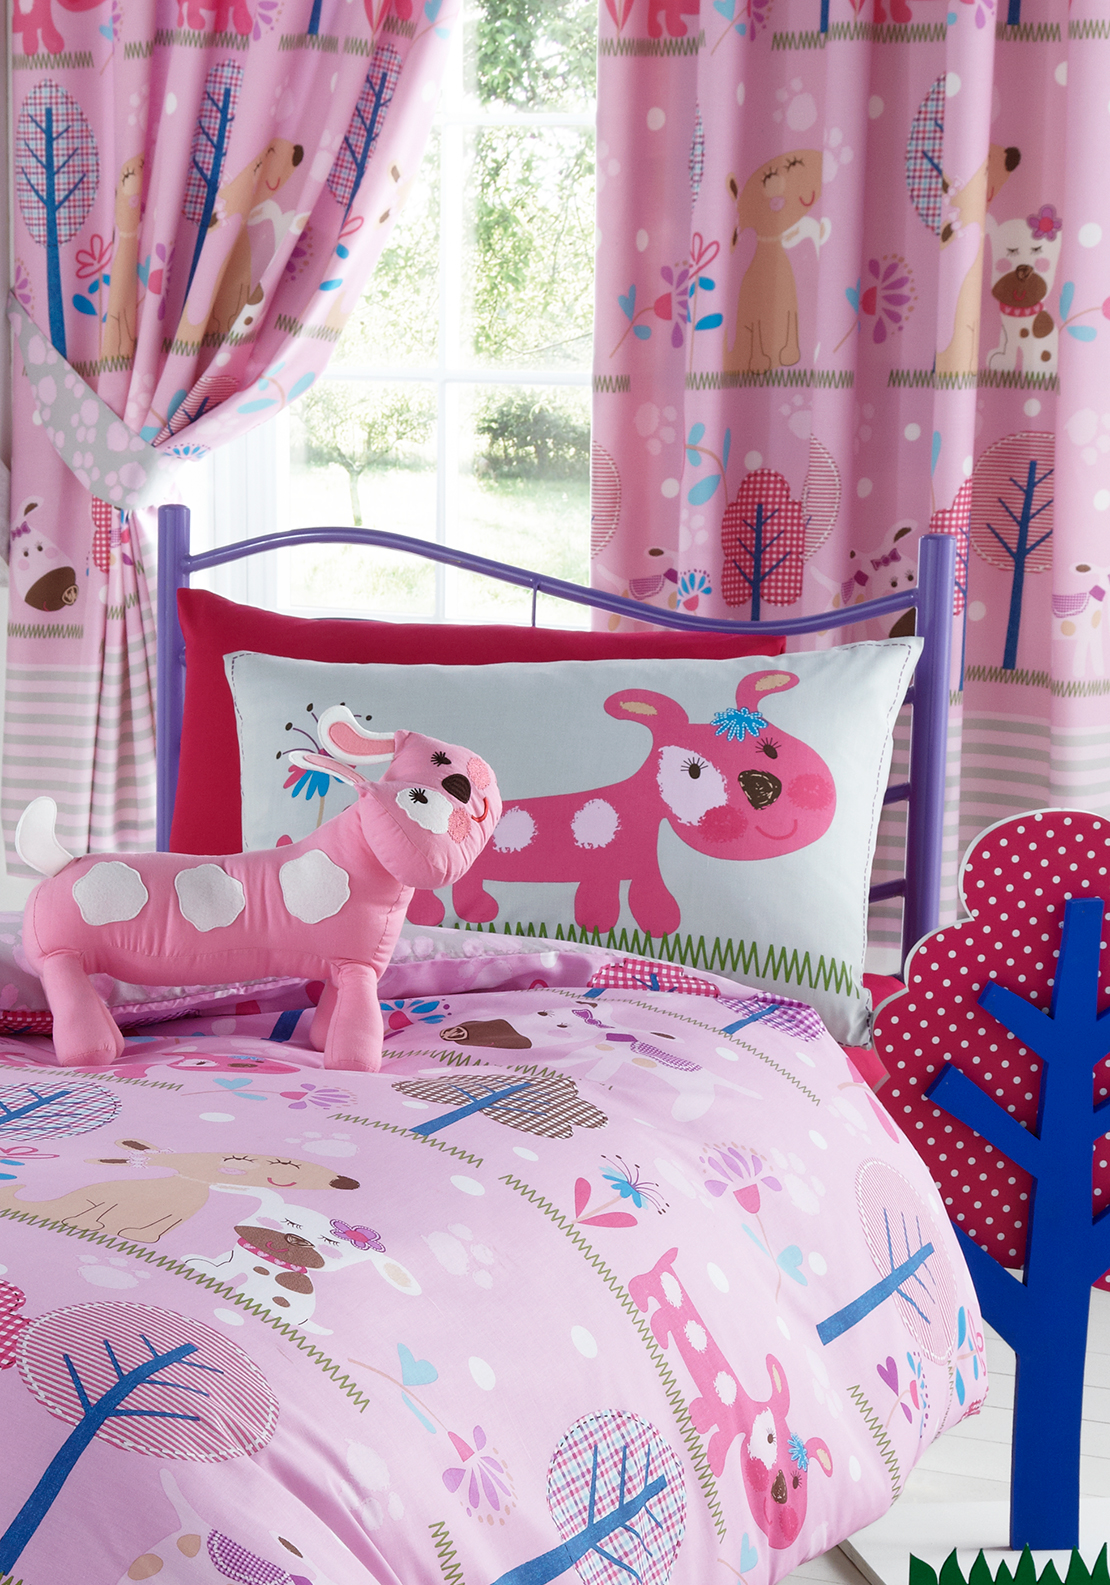 Kids' Club Pooch Curtains 66X72in, Pink